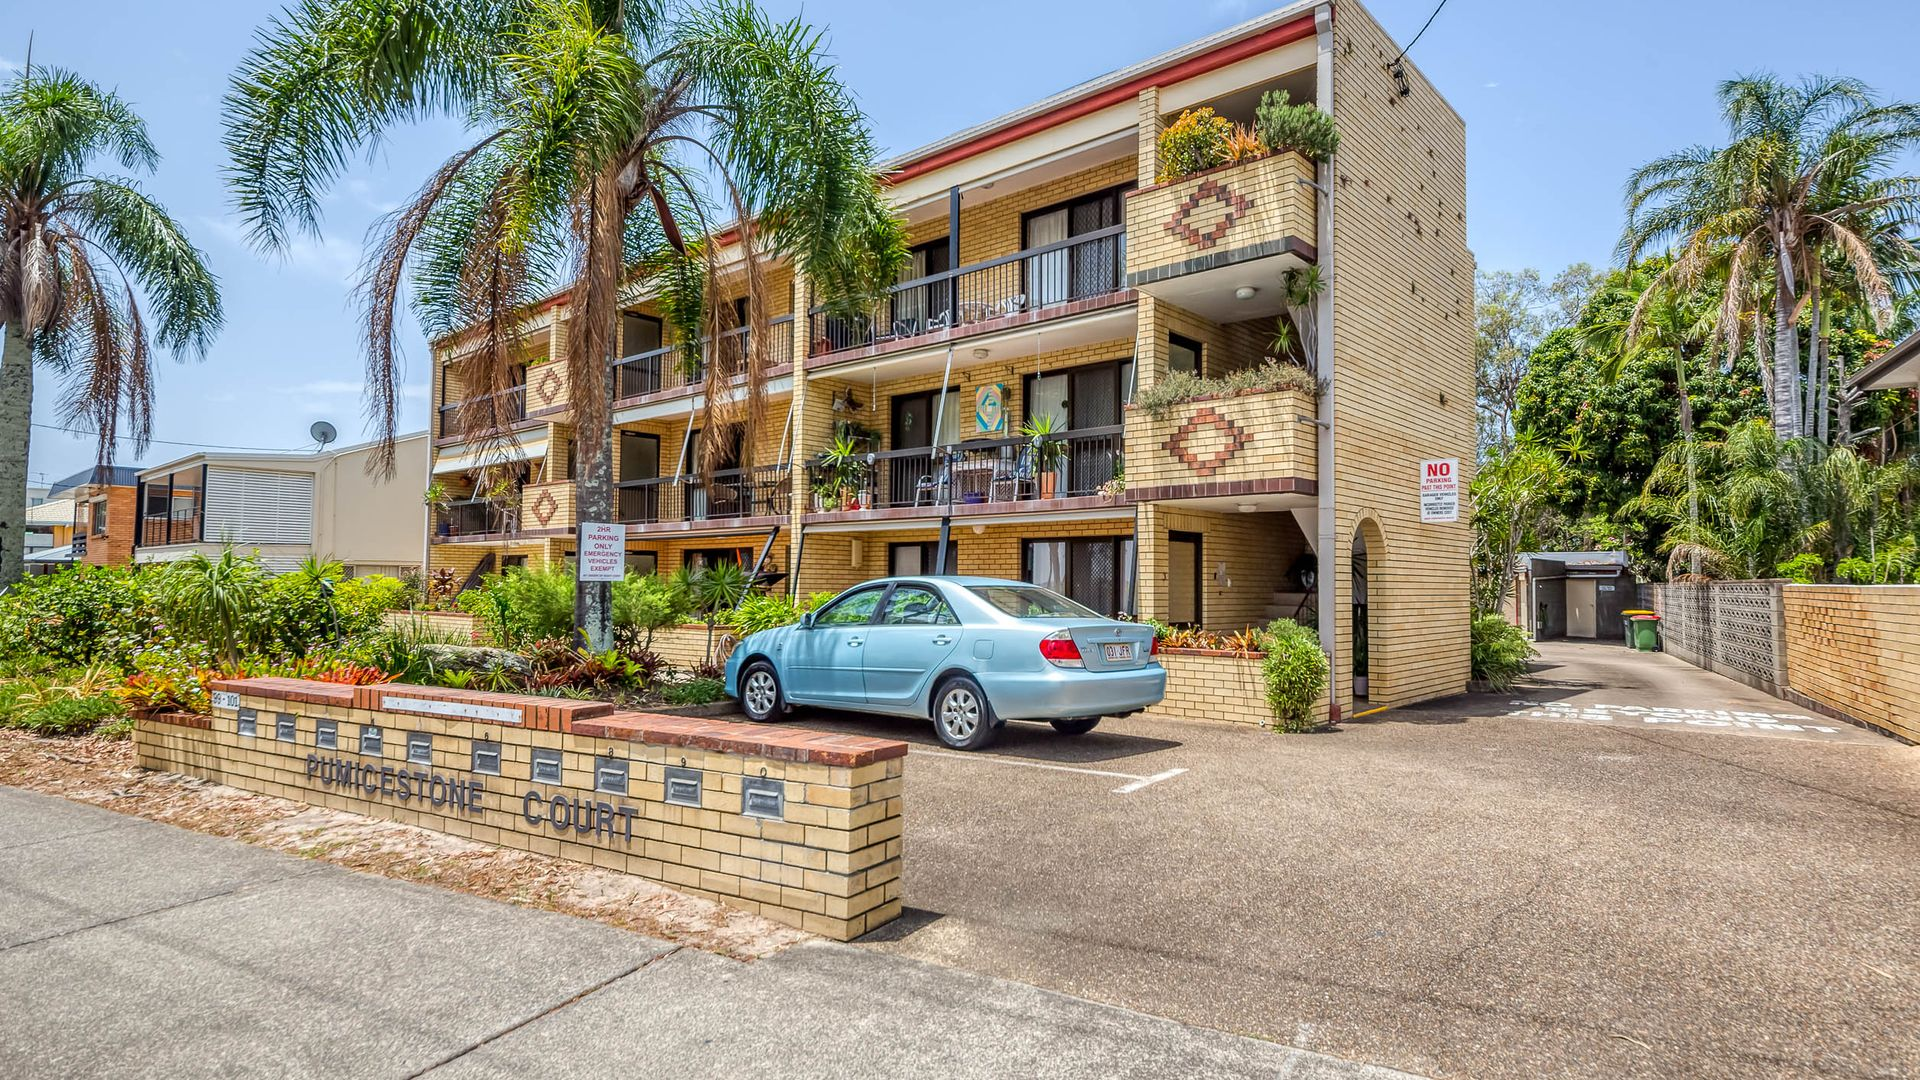 9/101 Welsby Parade, Bongaree QLD 4507, Image 1